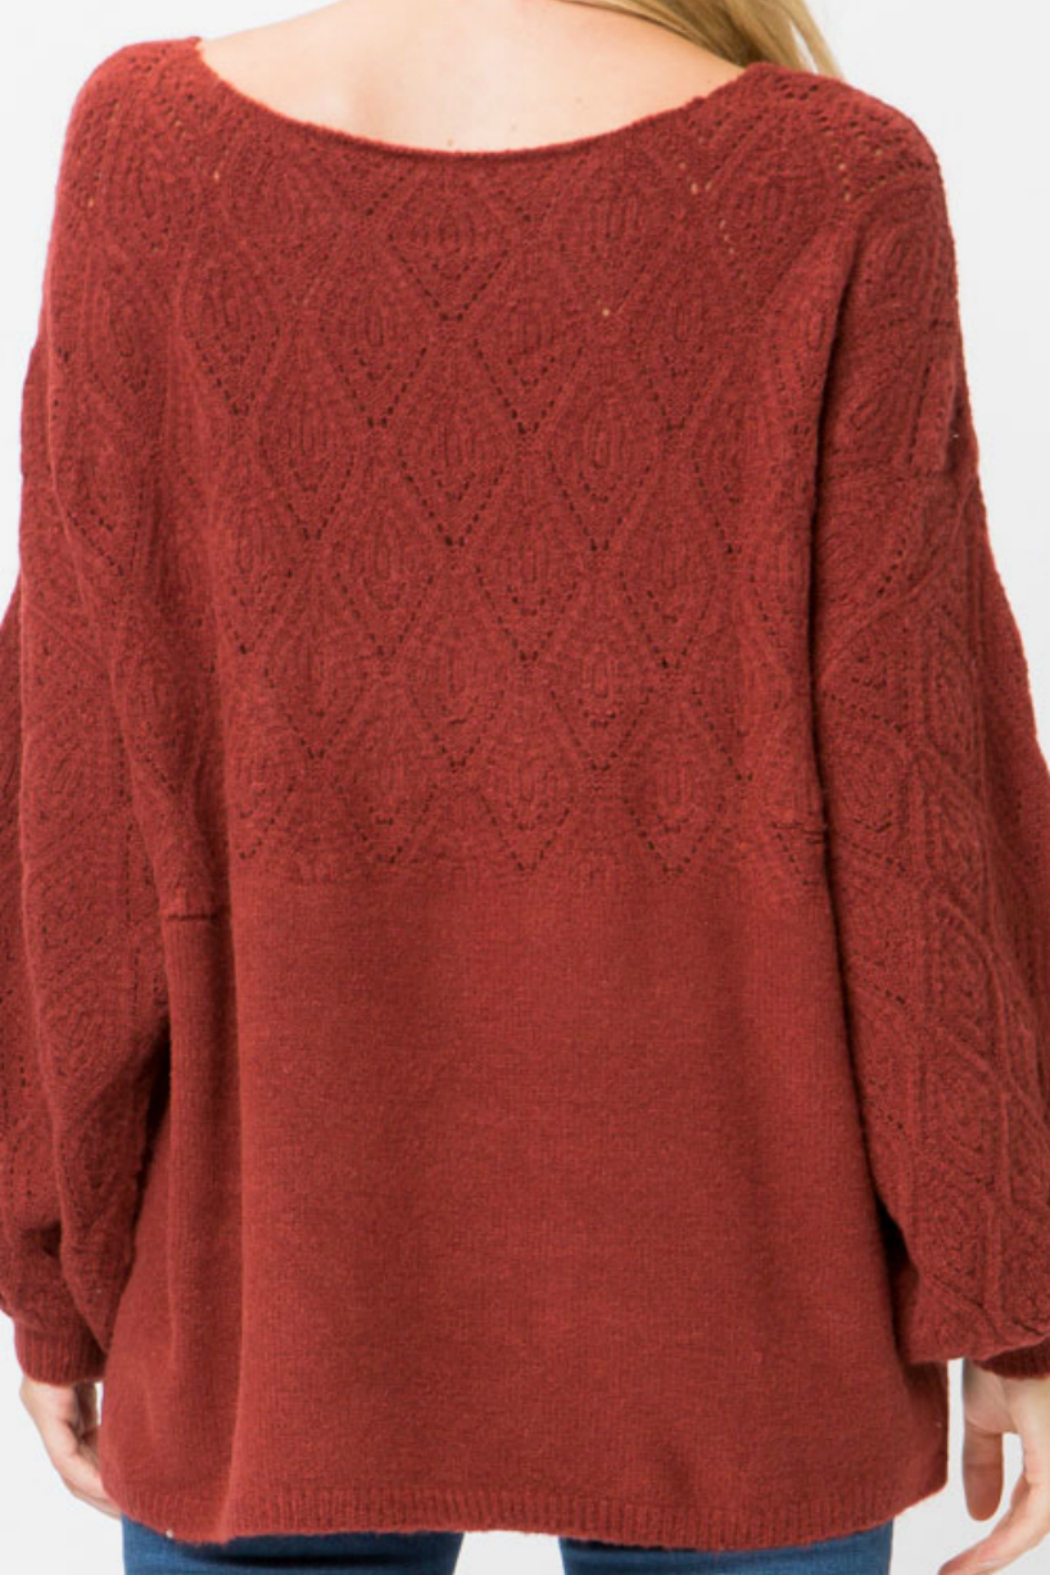 d3384e50764ec Cozy Casual Burshed lantern sleeve sweater from New York by Gado ...